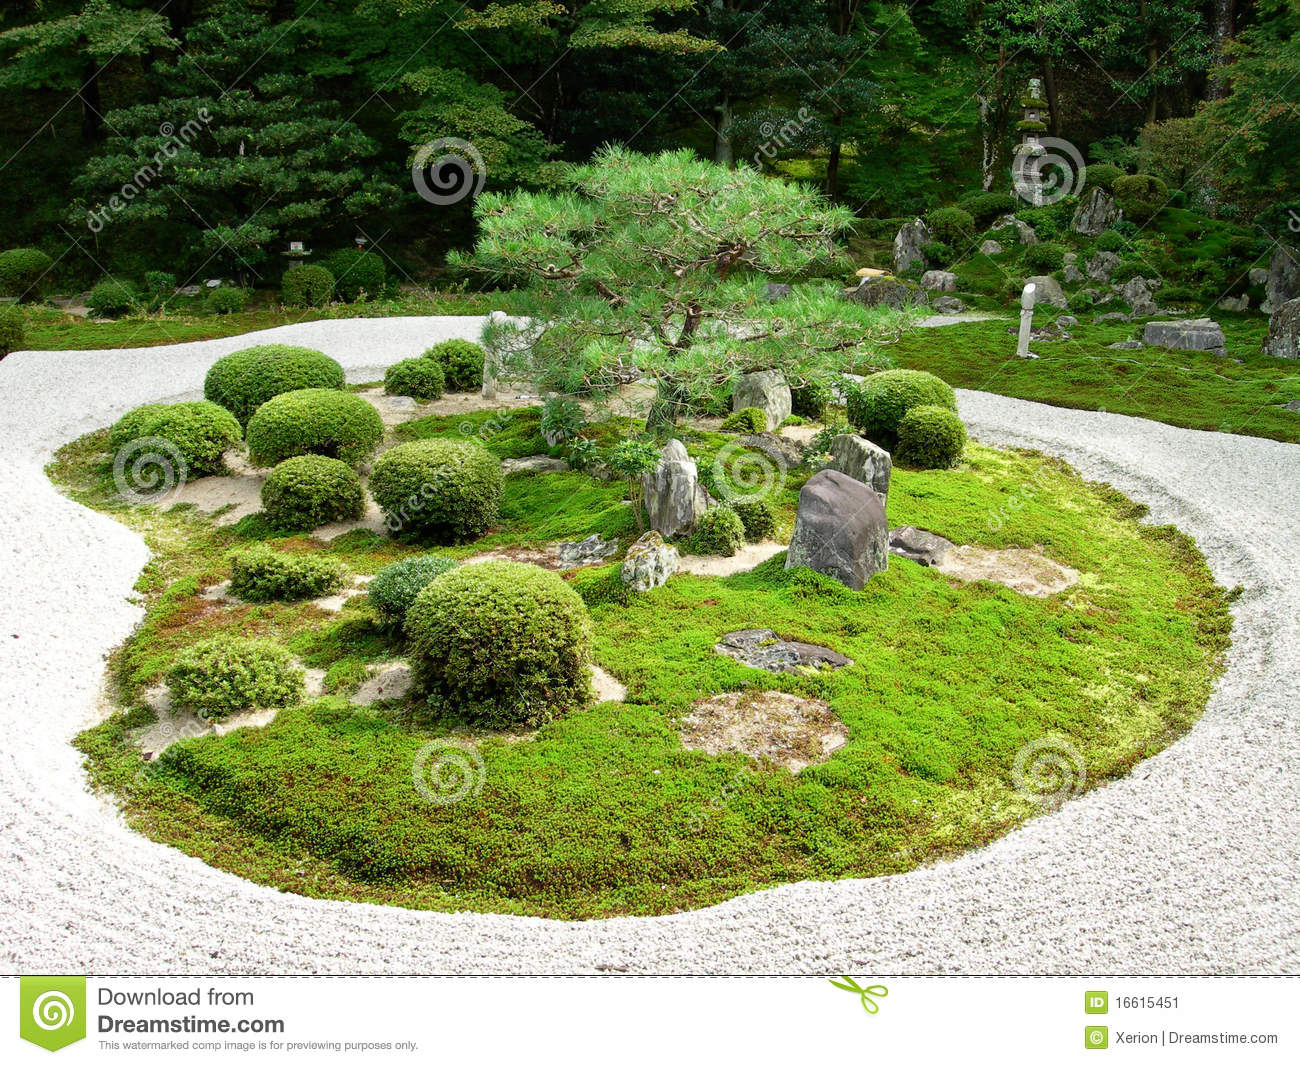 A japanese stone garden stock image image 16615451 for Japanese stone garden